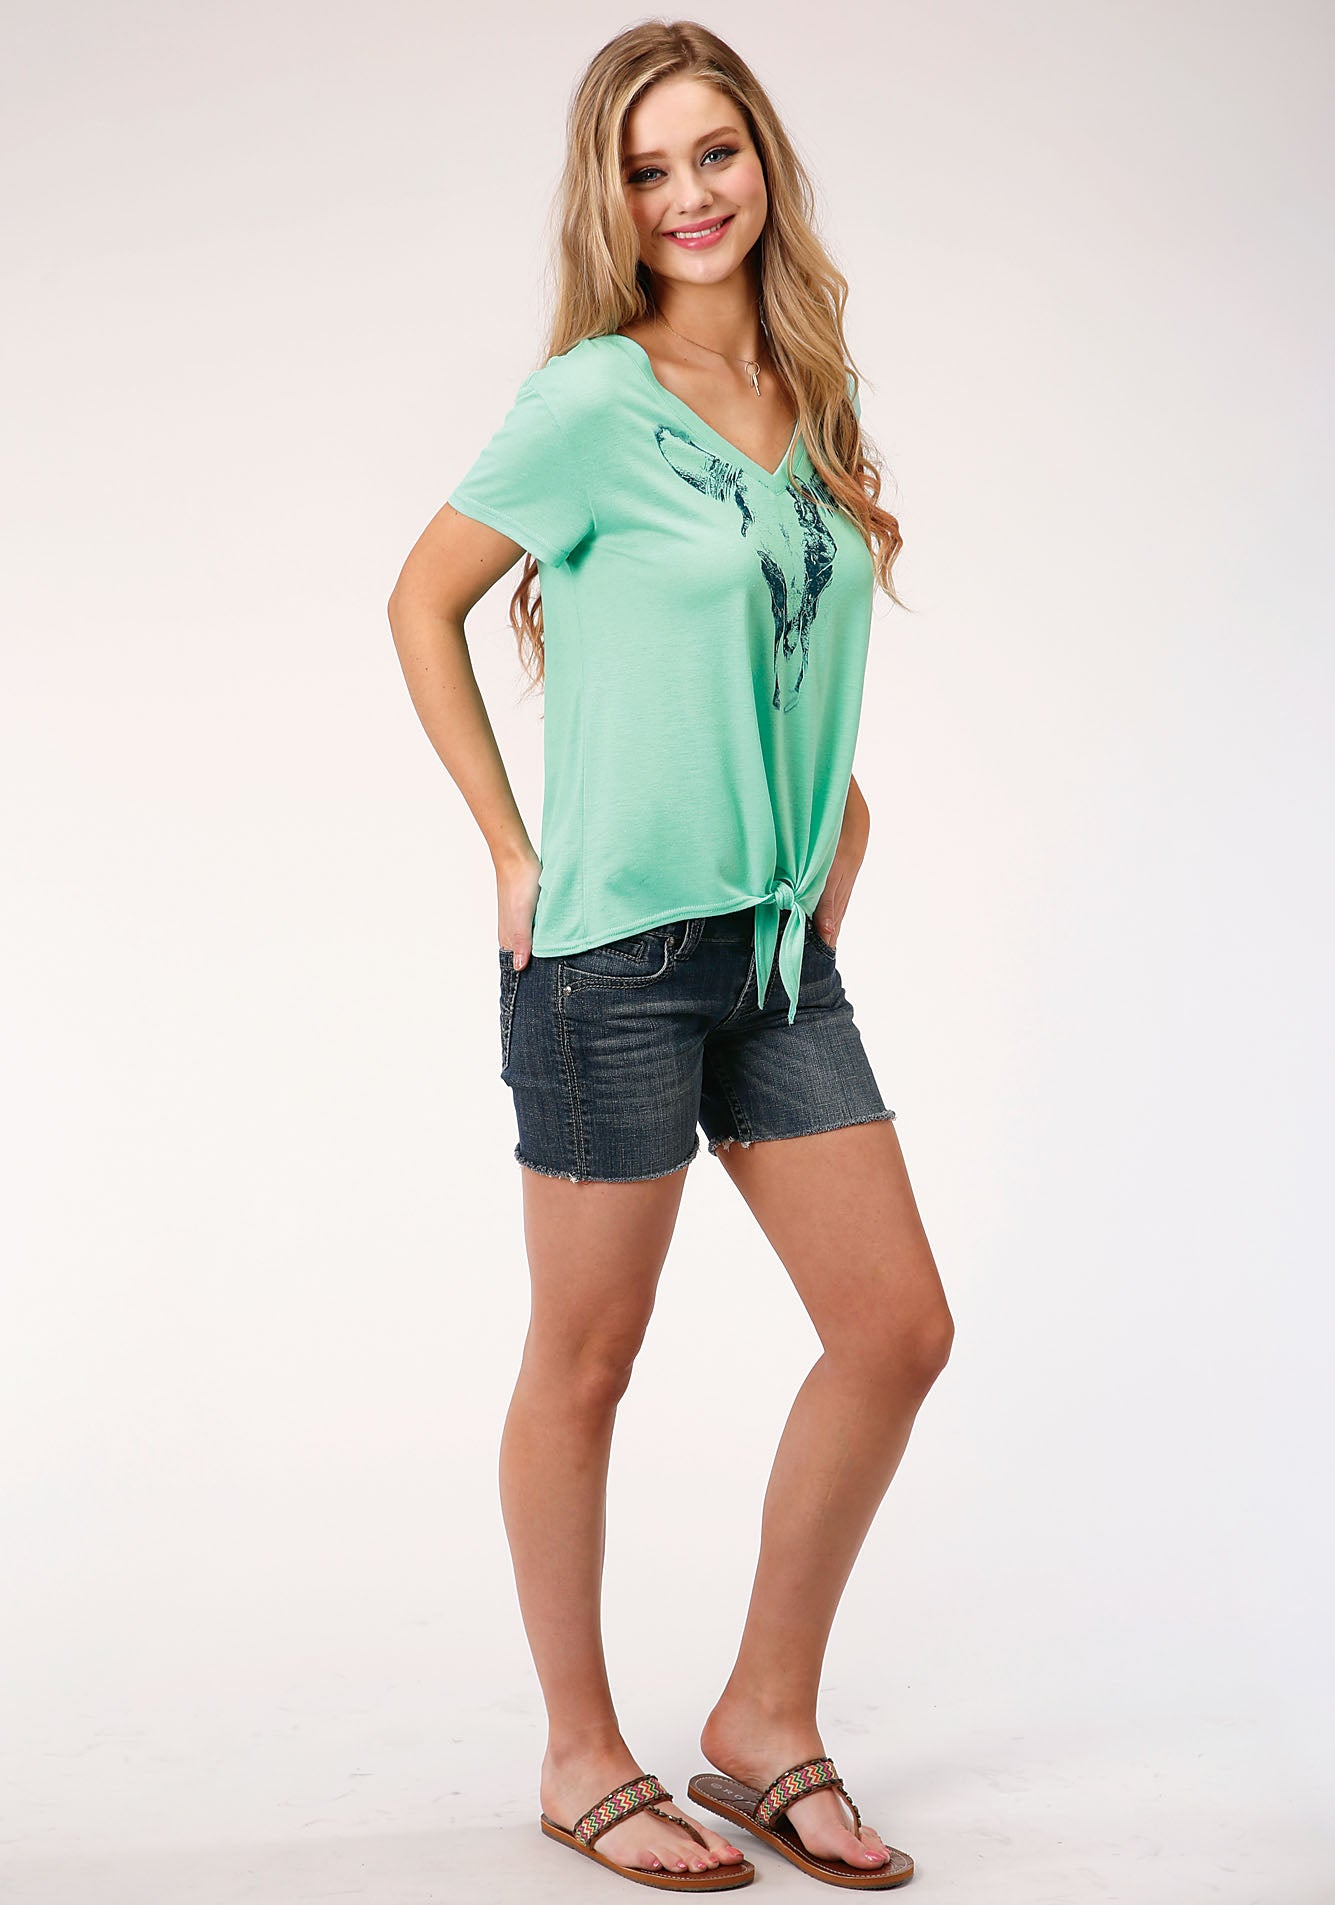 ROPER WOMENS GREEN 00134 POLY RAYON JERSEY V NECK TEE FIVE STAR COLLECTION- SPRING II SHORT SLEEVE